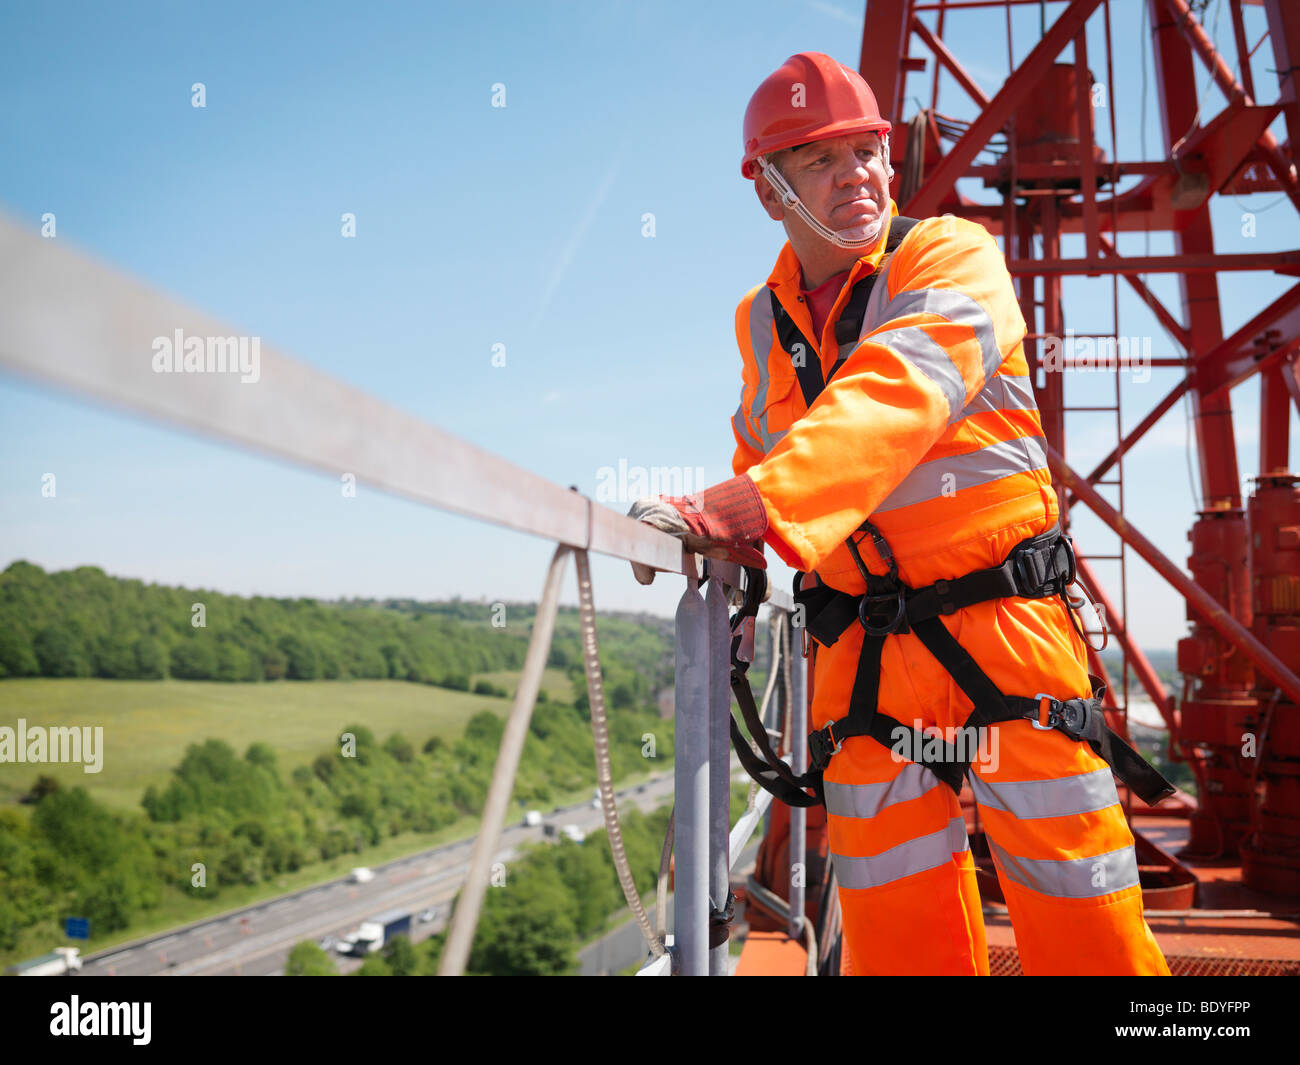 Crane Worker With Harness On Crane - Stock Image